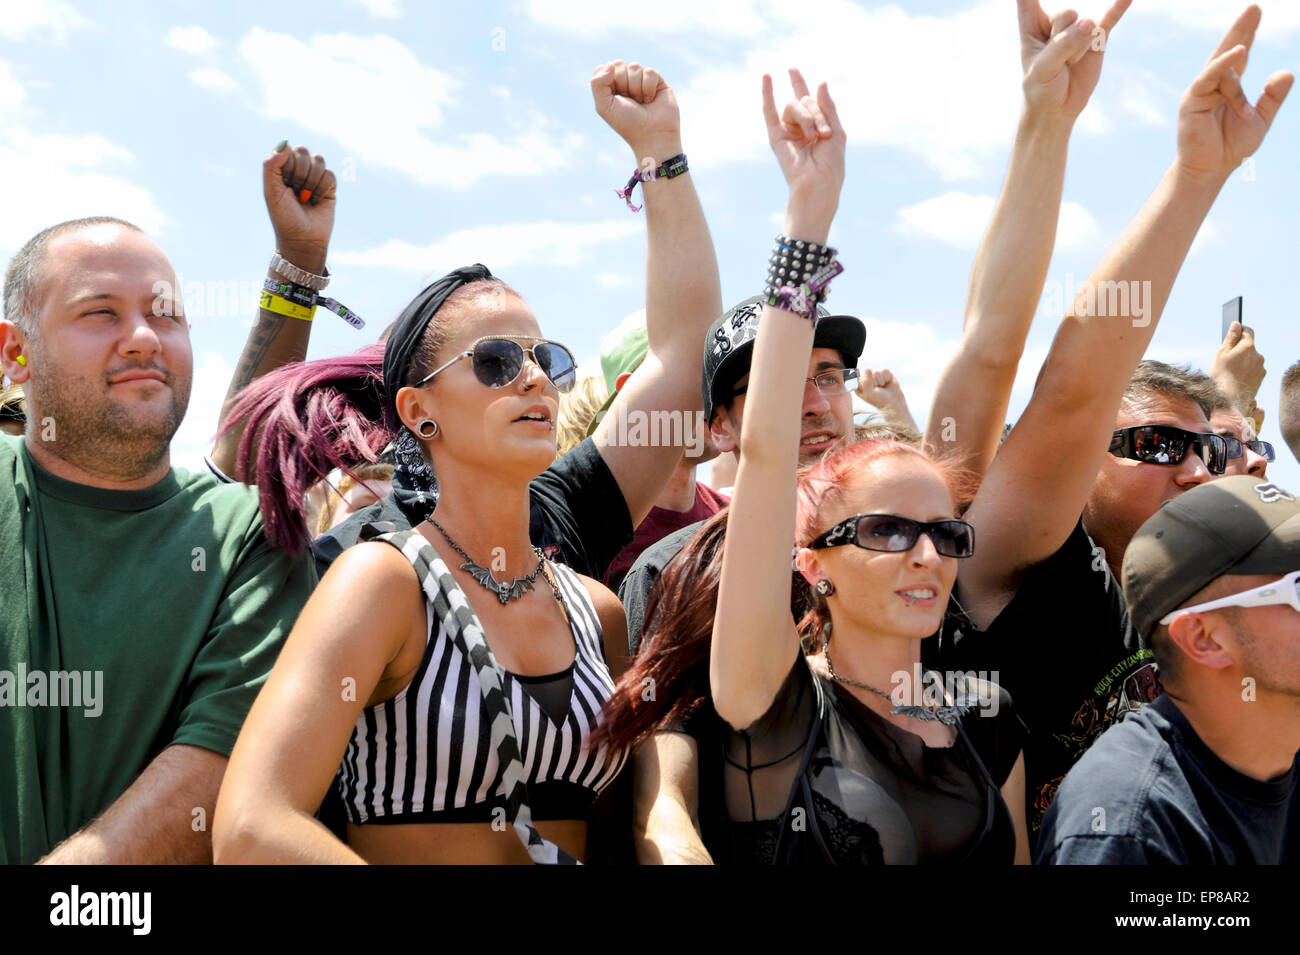 The 2015 Monster Energy Carolina Rebellion  Music Festival, crowd, audience, fans, people. - Stock Image